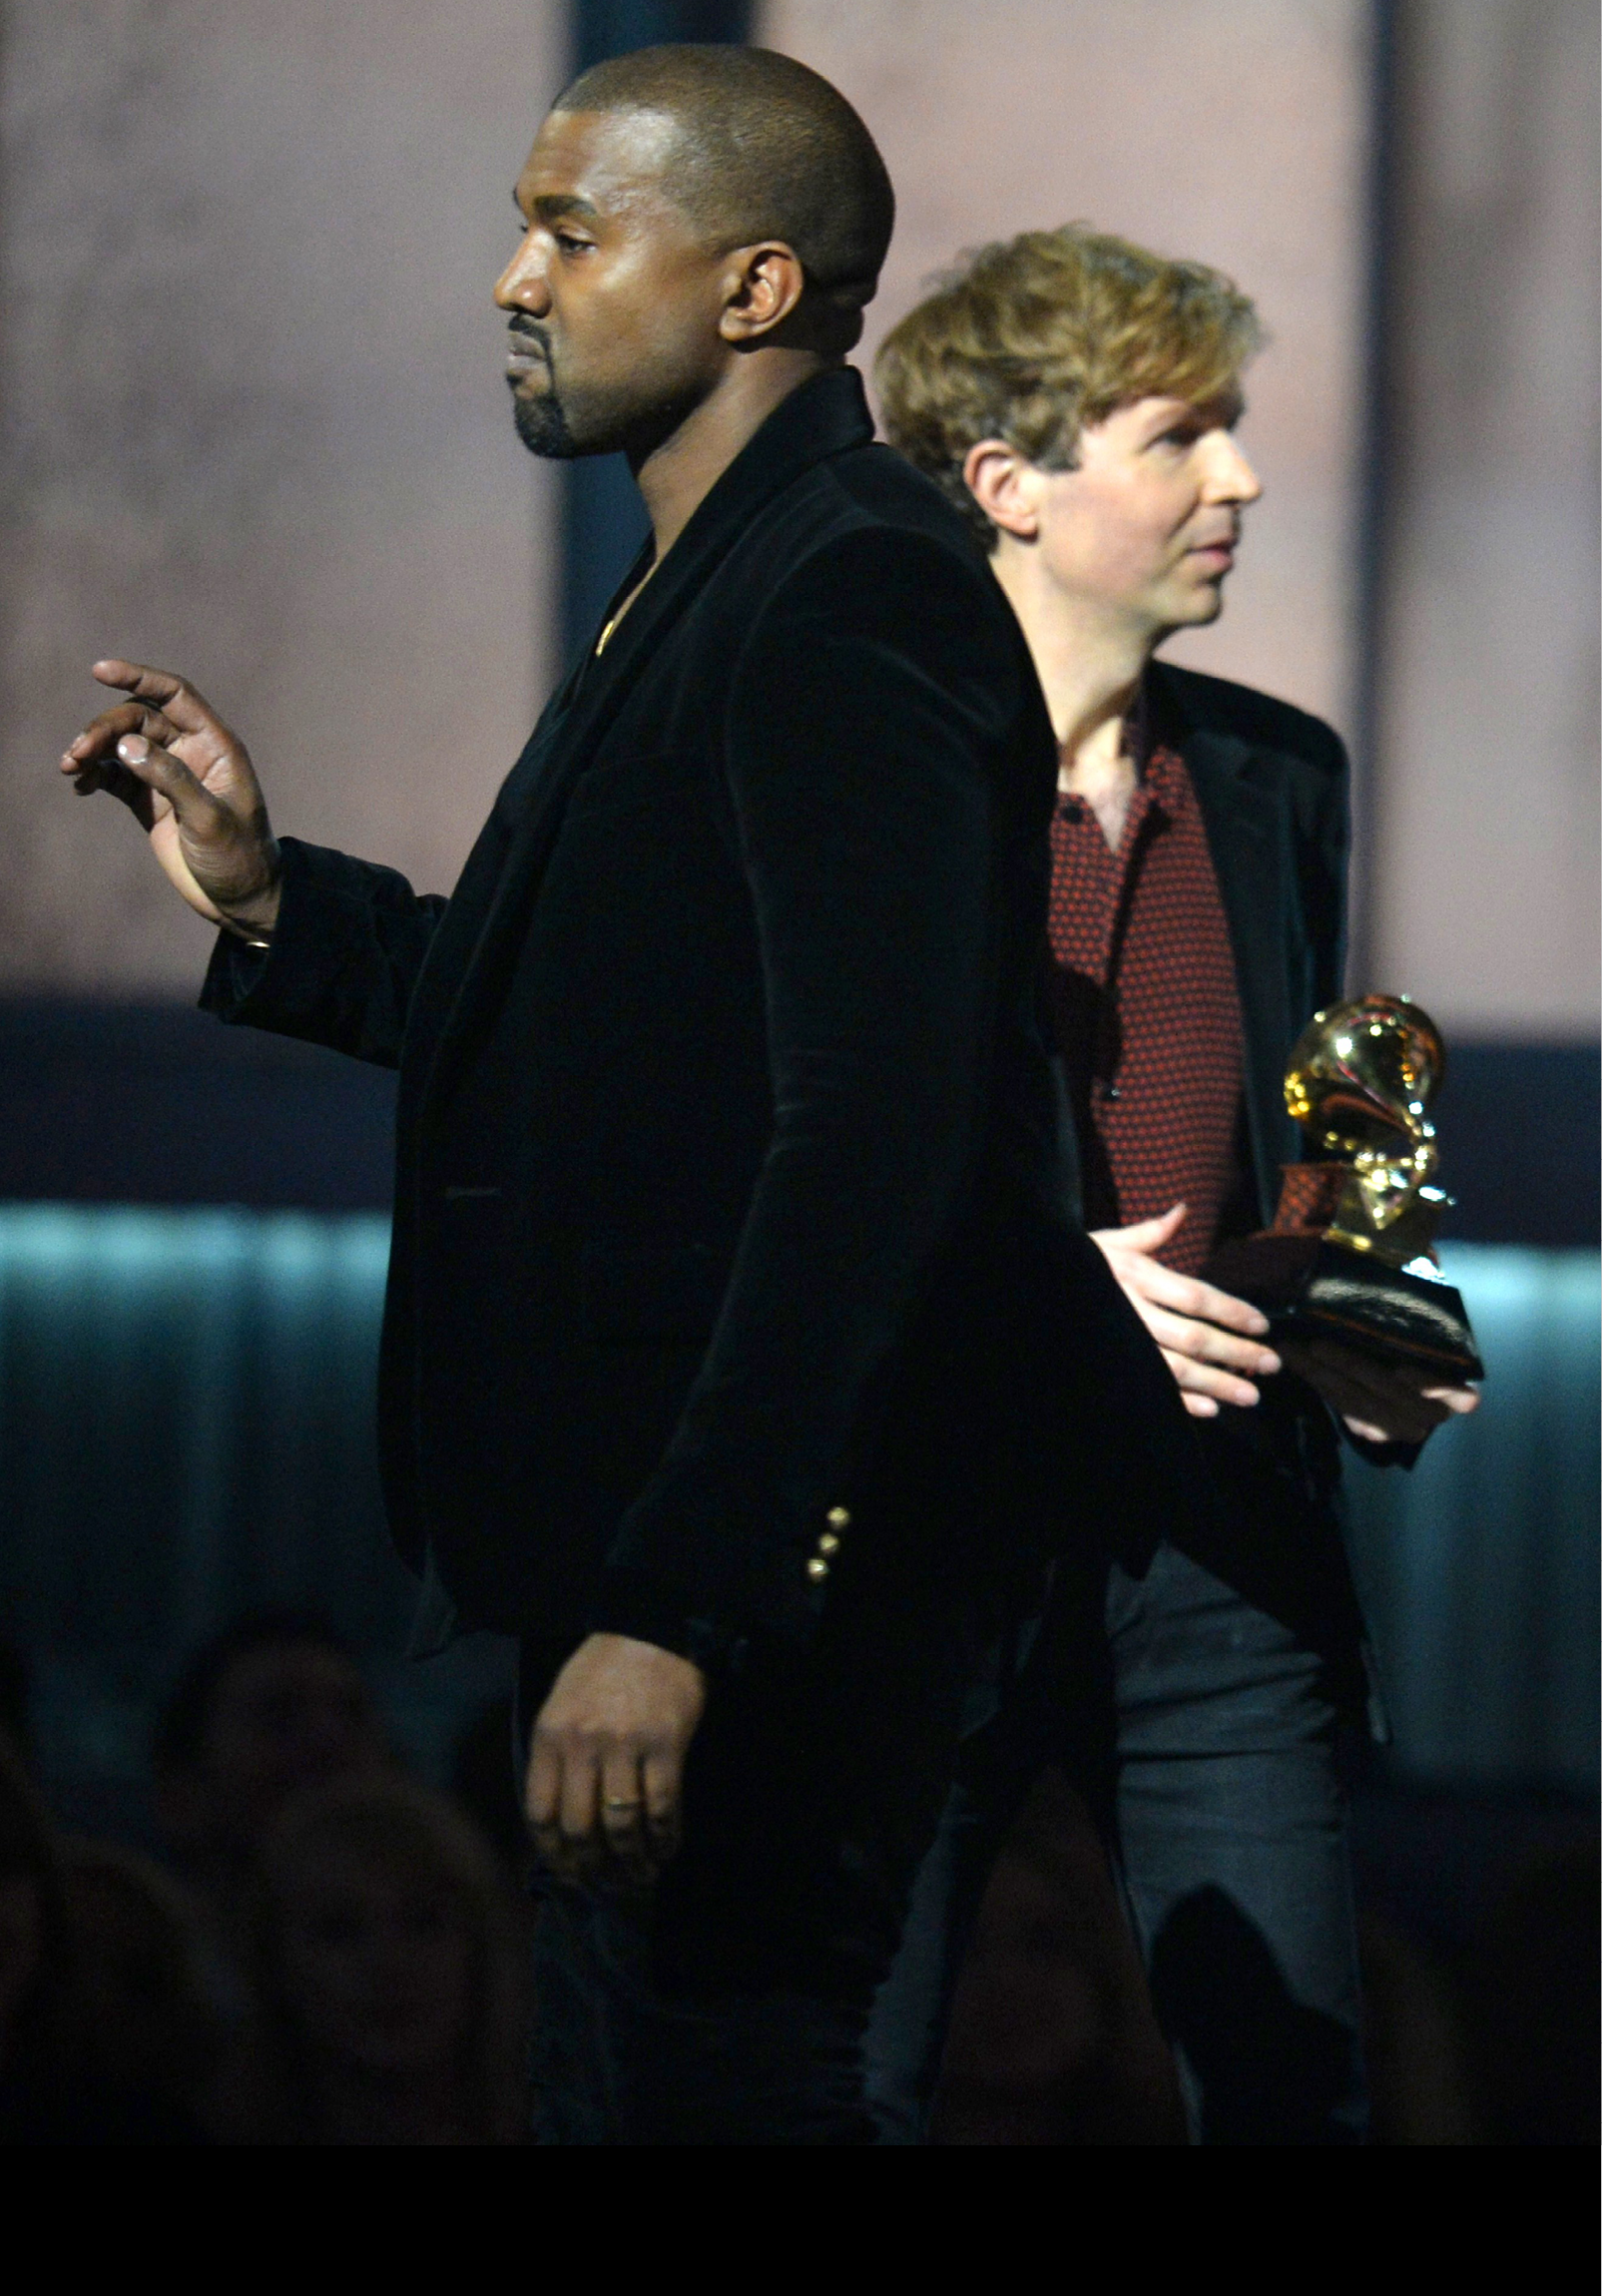 (FILES) In this February 8, 2015 file photo, winner for Album Of The Year Beck reacts as Kanye West appears on stage at the 57th Annual Grammy Awards in Los Angeles February 8, 2015. West on February 11, 2015 urged an overhaul of the Grammys to award commercially successful musicians, even as the rapper toned down his criticism of this year's surprise winner Beck. The famously mercurial West stole the spotlight at the music industry's awards night Sunday when he rushed toward the stage as Beck -- the innovative rocker who has enjoyed critical acclaim, if a niche following, for two decades --accepted the Album of the Year award for his lush, melancholy  Morning Phase.  Soon after the broadcast, West said that Beck should  respect artistry  and give his award to superstar Beyonce for her self-titled album, one of her most intense works which features the ode to marital bliss  Drunk In Love  sung with husband Jay-Z.  AFP PHOTO / ROBYN BECK / FILES